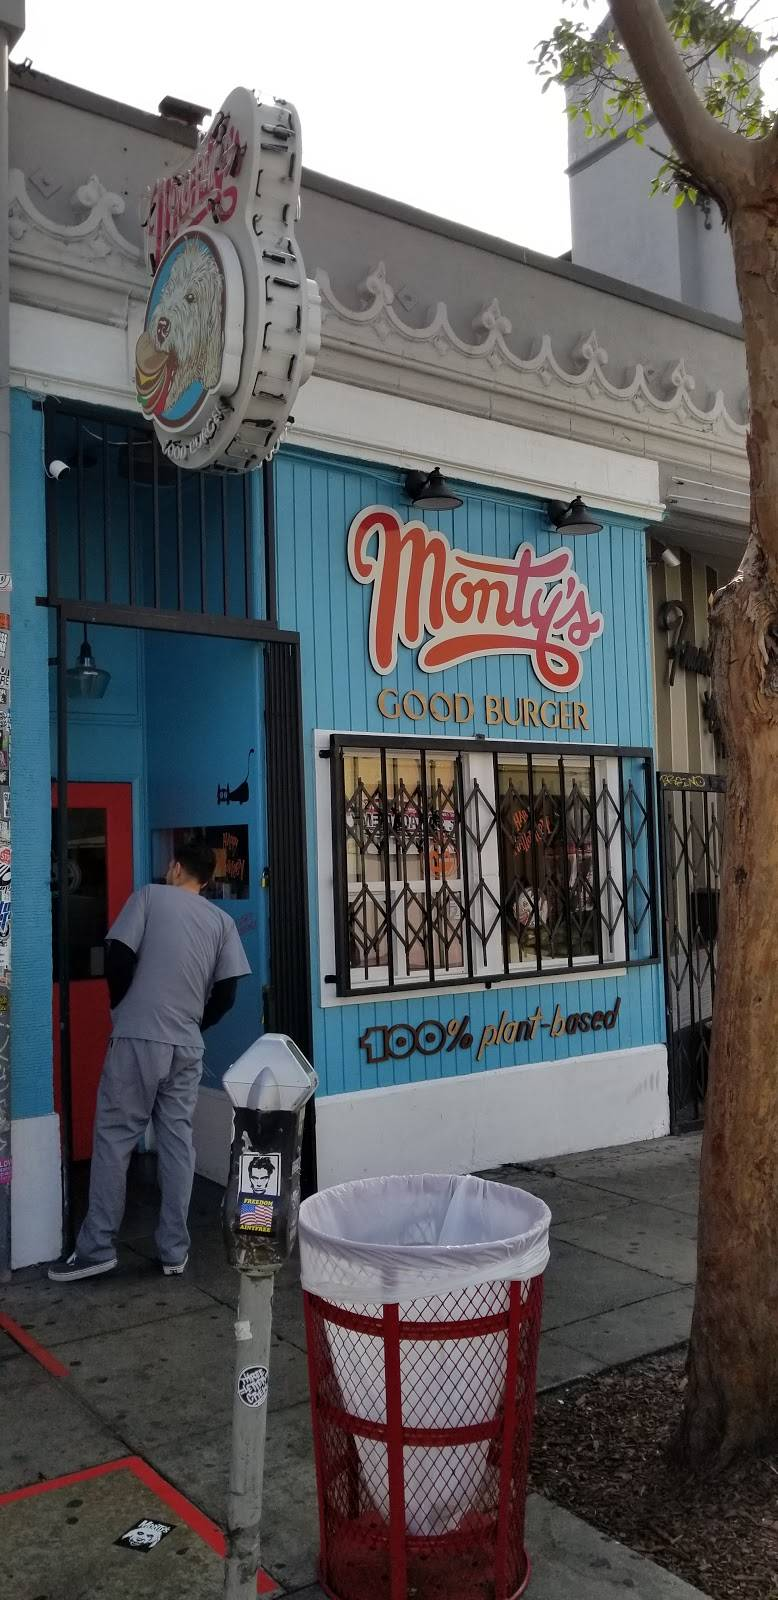 Montys Good Burger | restaurant | 516 S Western Ave, Los Angeles, CA 90020, USA | 9092590652 OR +1 909-259-0652